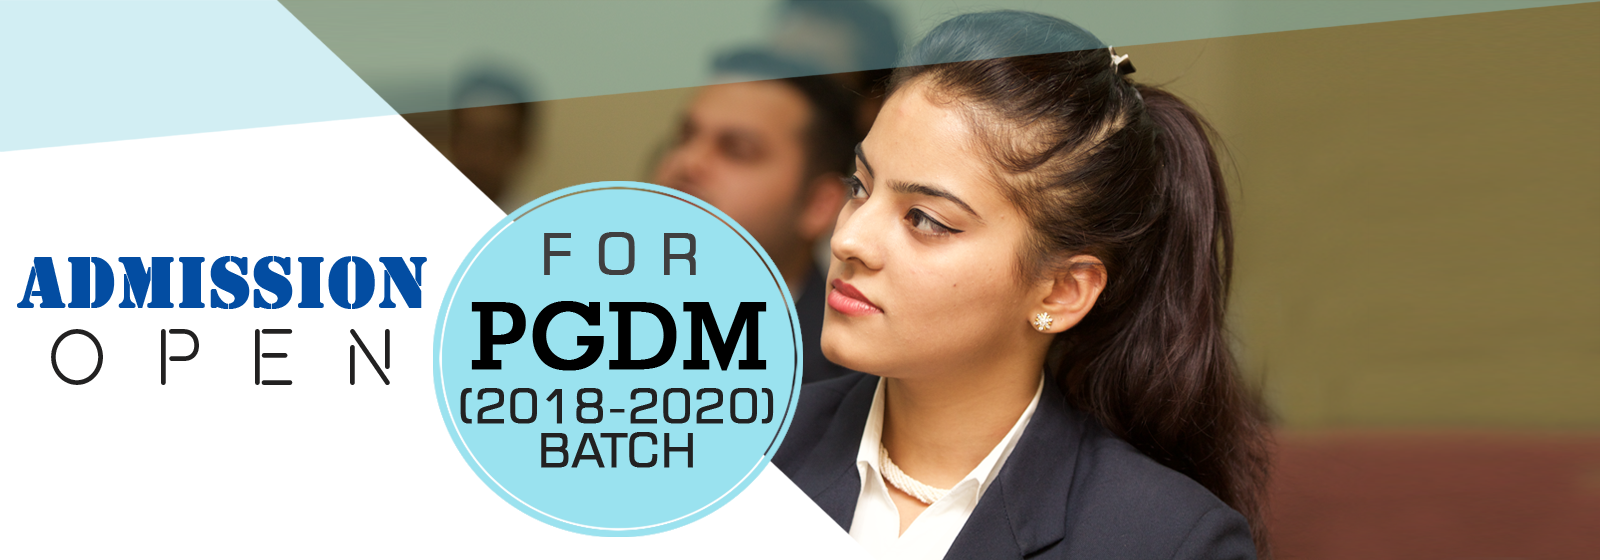 Admission Open for PGDM/MBA Batch 2018-2020, Best MBA college in Delhi/NCR